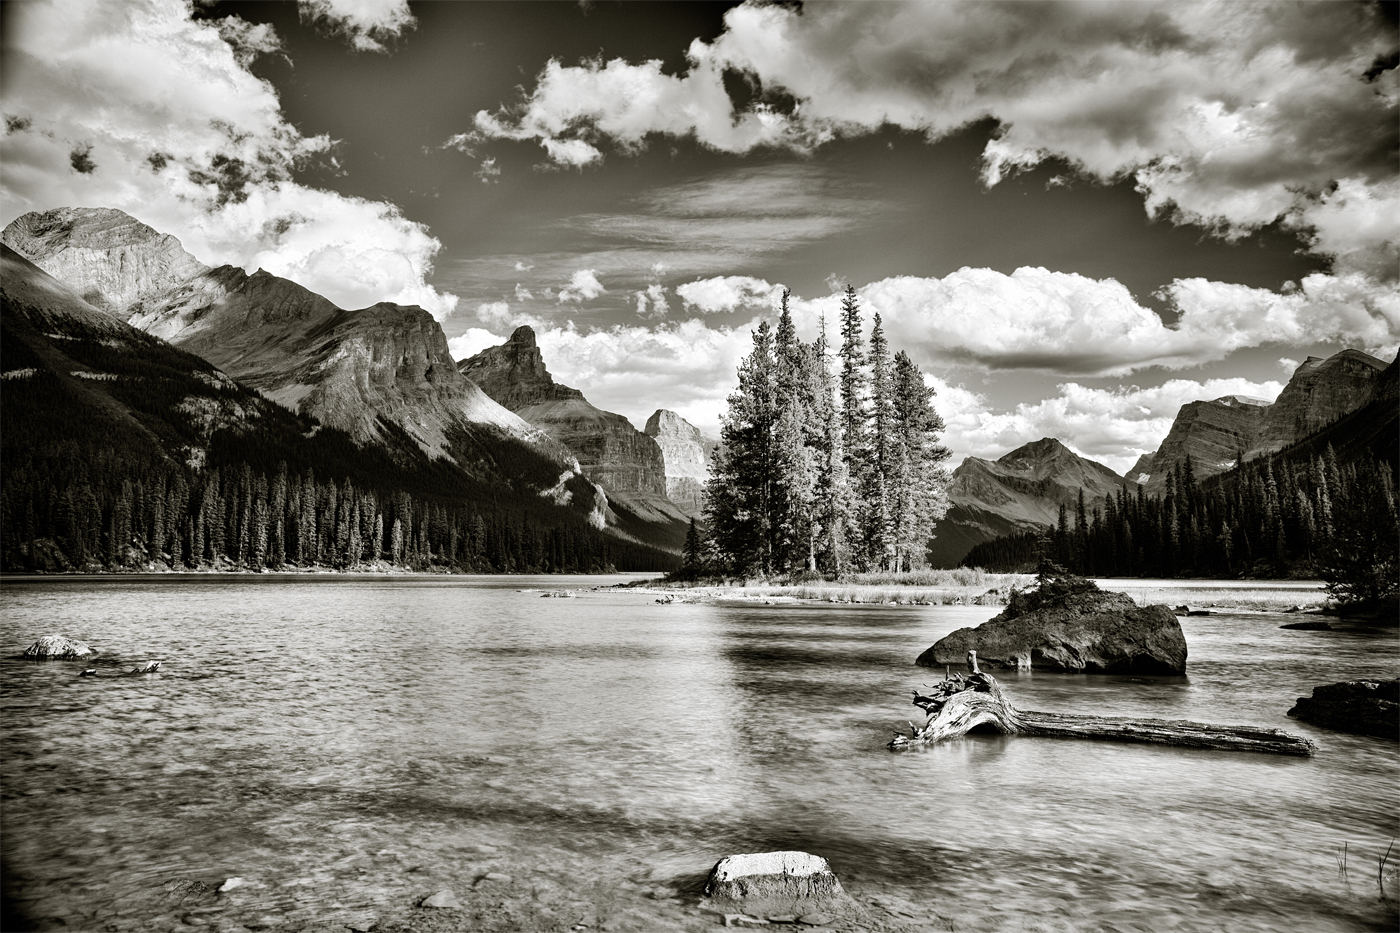 The Spirit of the Canadian Rockies, and the culmination of our canoeing efforts. (Paul Nguyen)